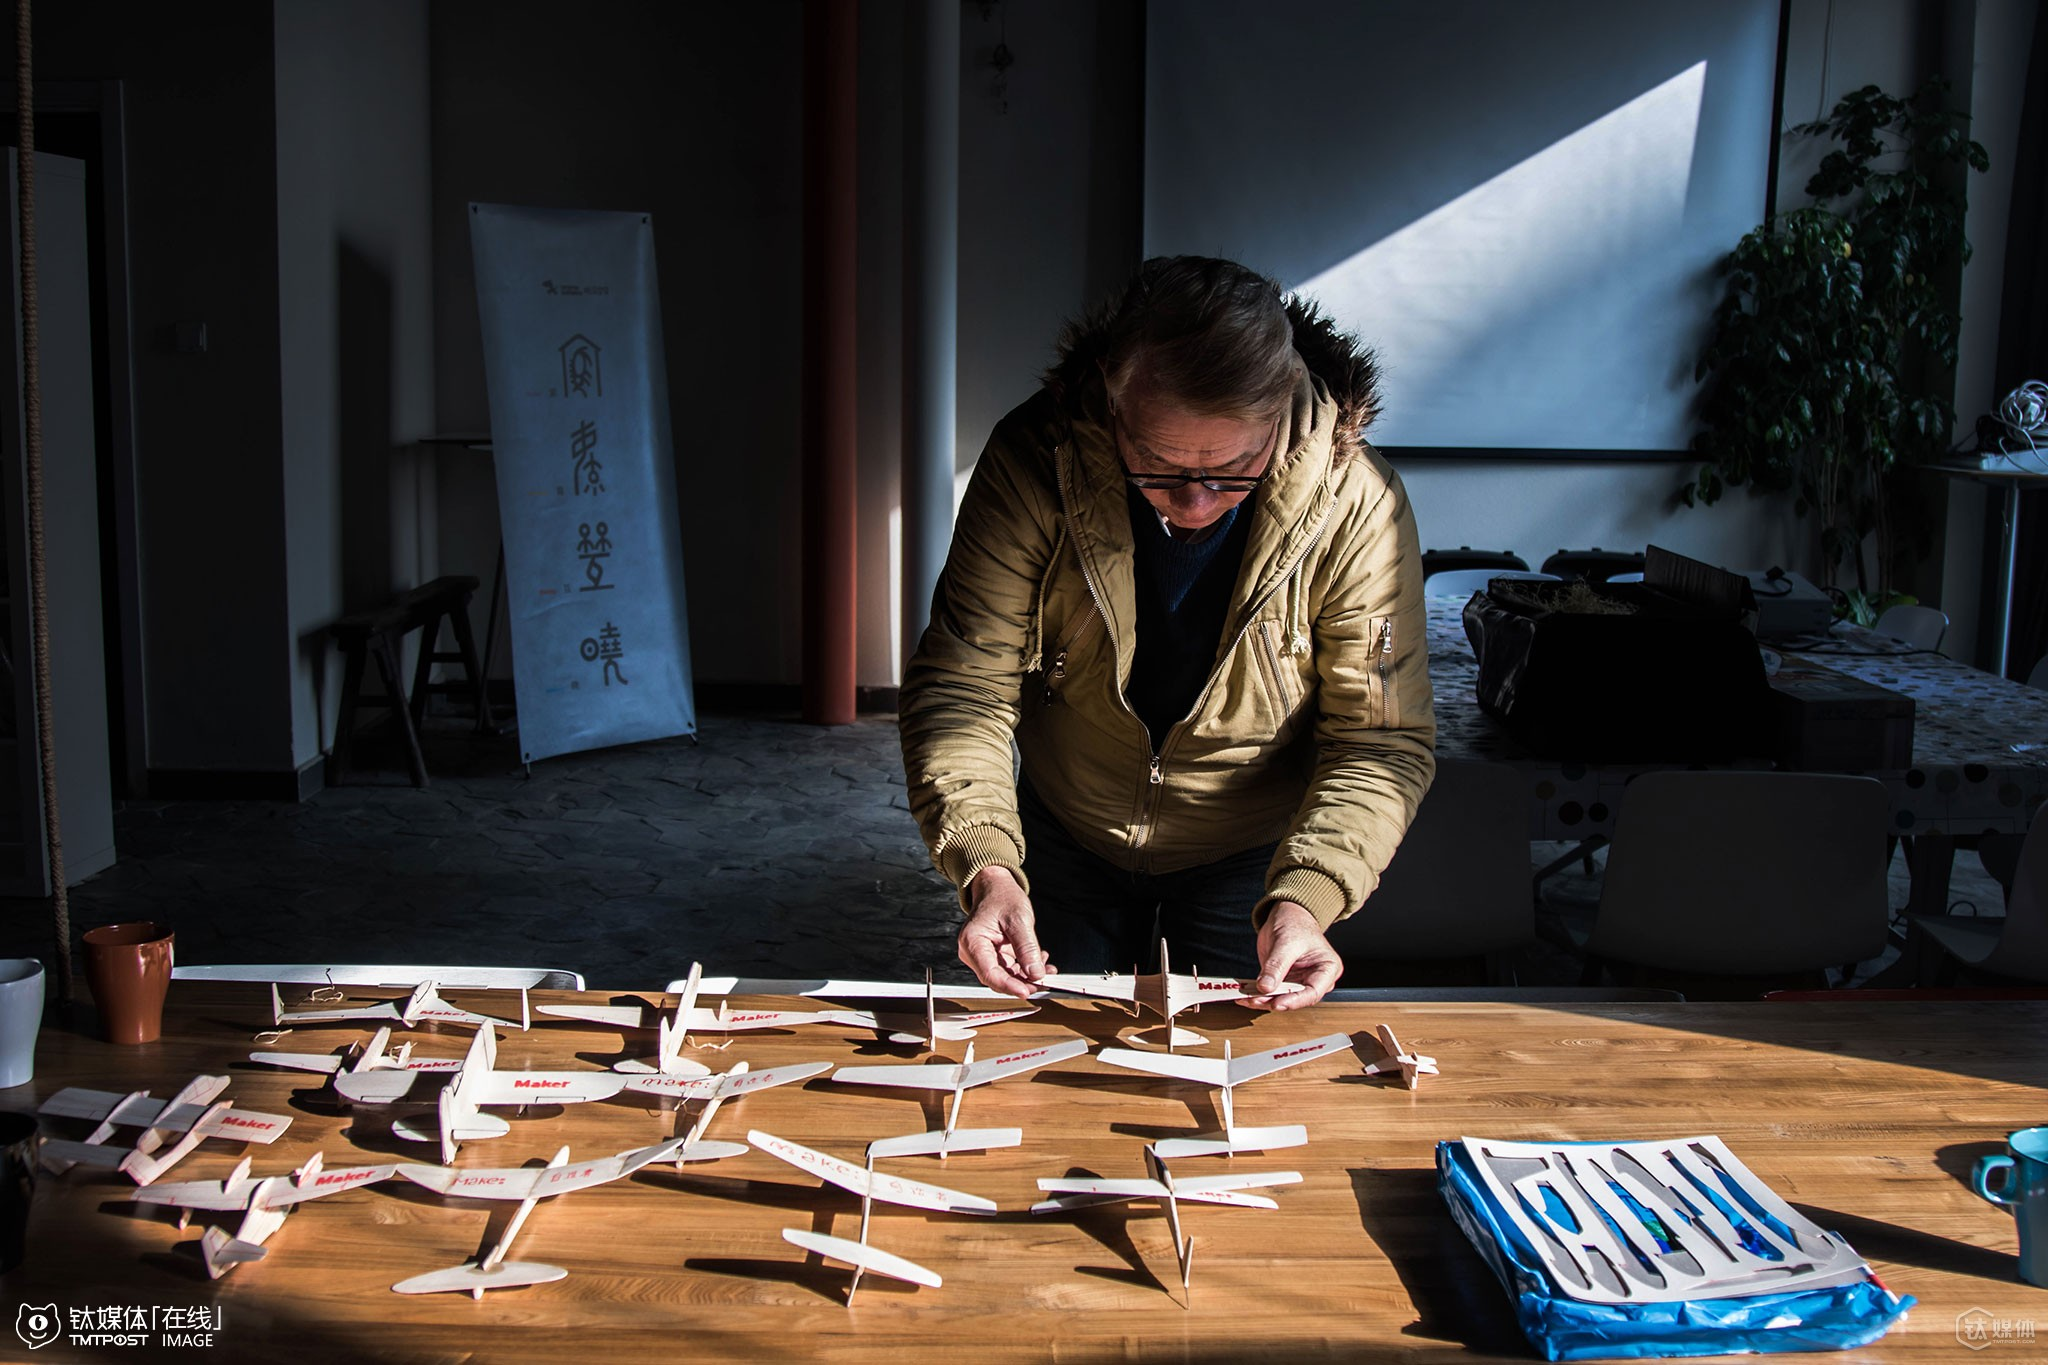 """Zheng Fude took some of his small models from Taiwan to Beijing to show his students. His courses start with cardboard planes, to Balsa wood planes, frame planes, and remote control planes. """"Patience is the most essential thing when making a plane model,"""" Zheng said. """"The final product doesn"""